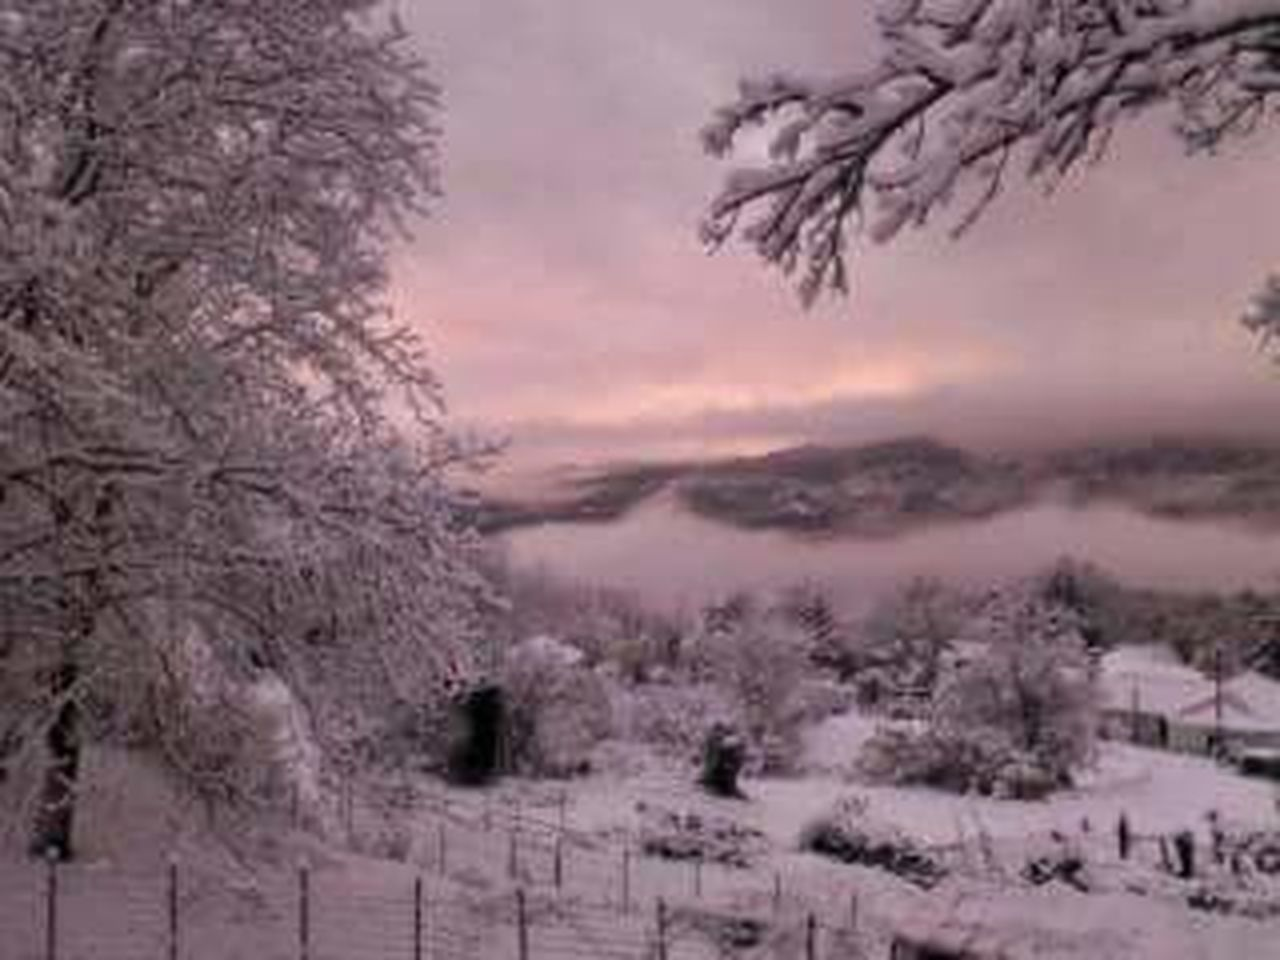 winter, cold temperature, snow, tree, nature, scenics, weather, beauty in nature, outdoors, tranquil scene, sky, no people, sunset, tranquility, landscape, frozen, rural scene, fog, day, mountain, branch, freshness